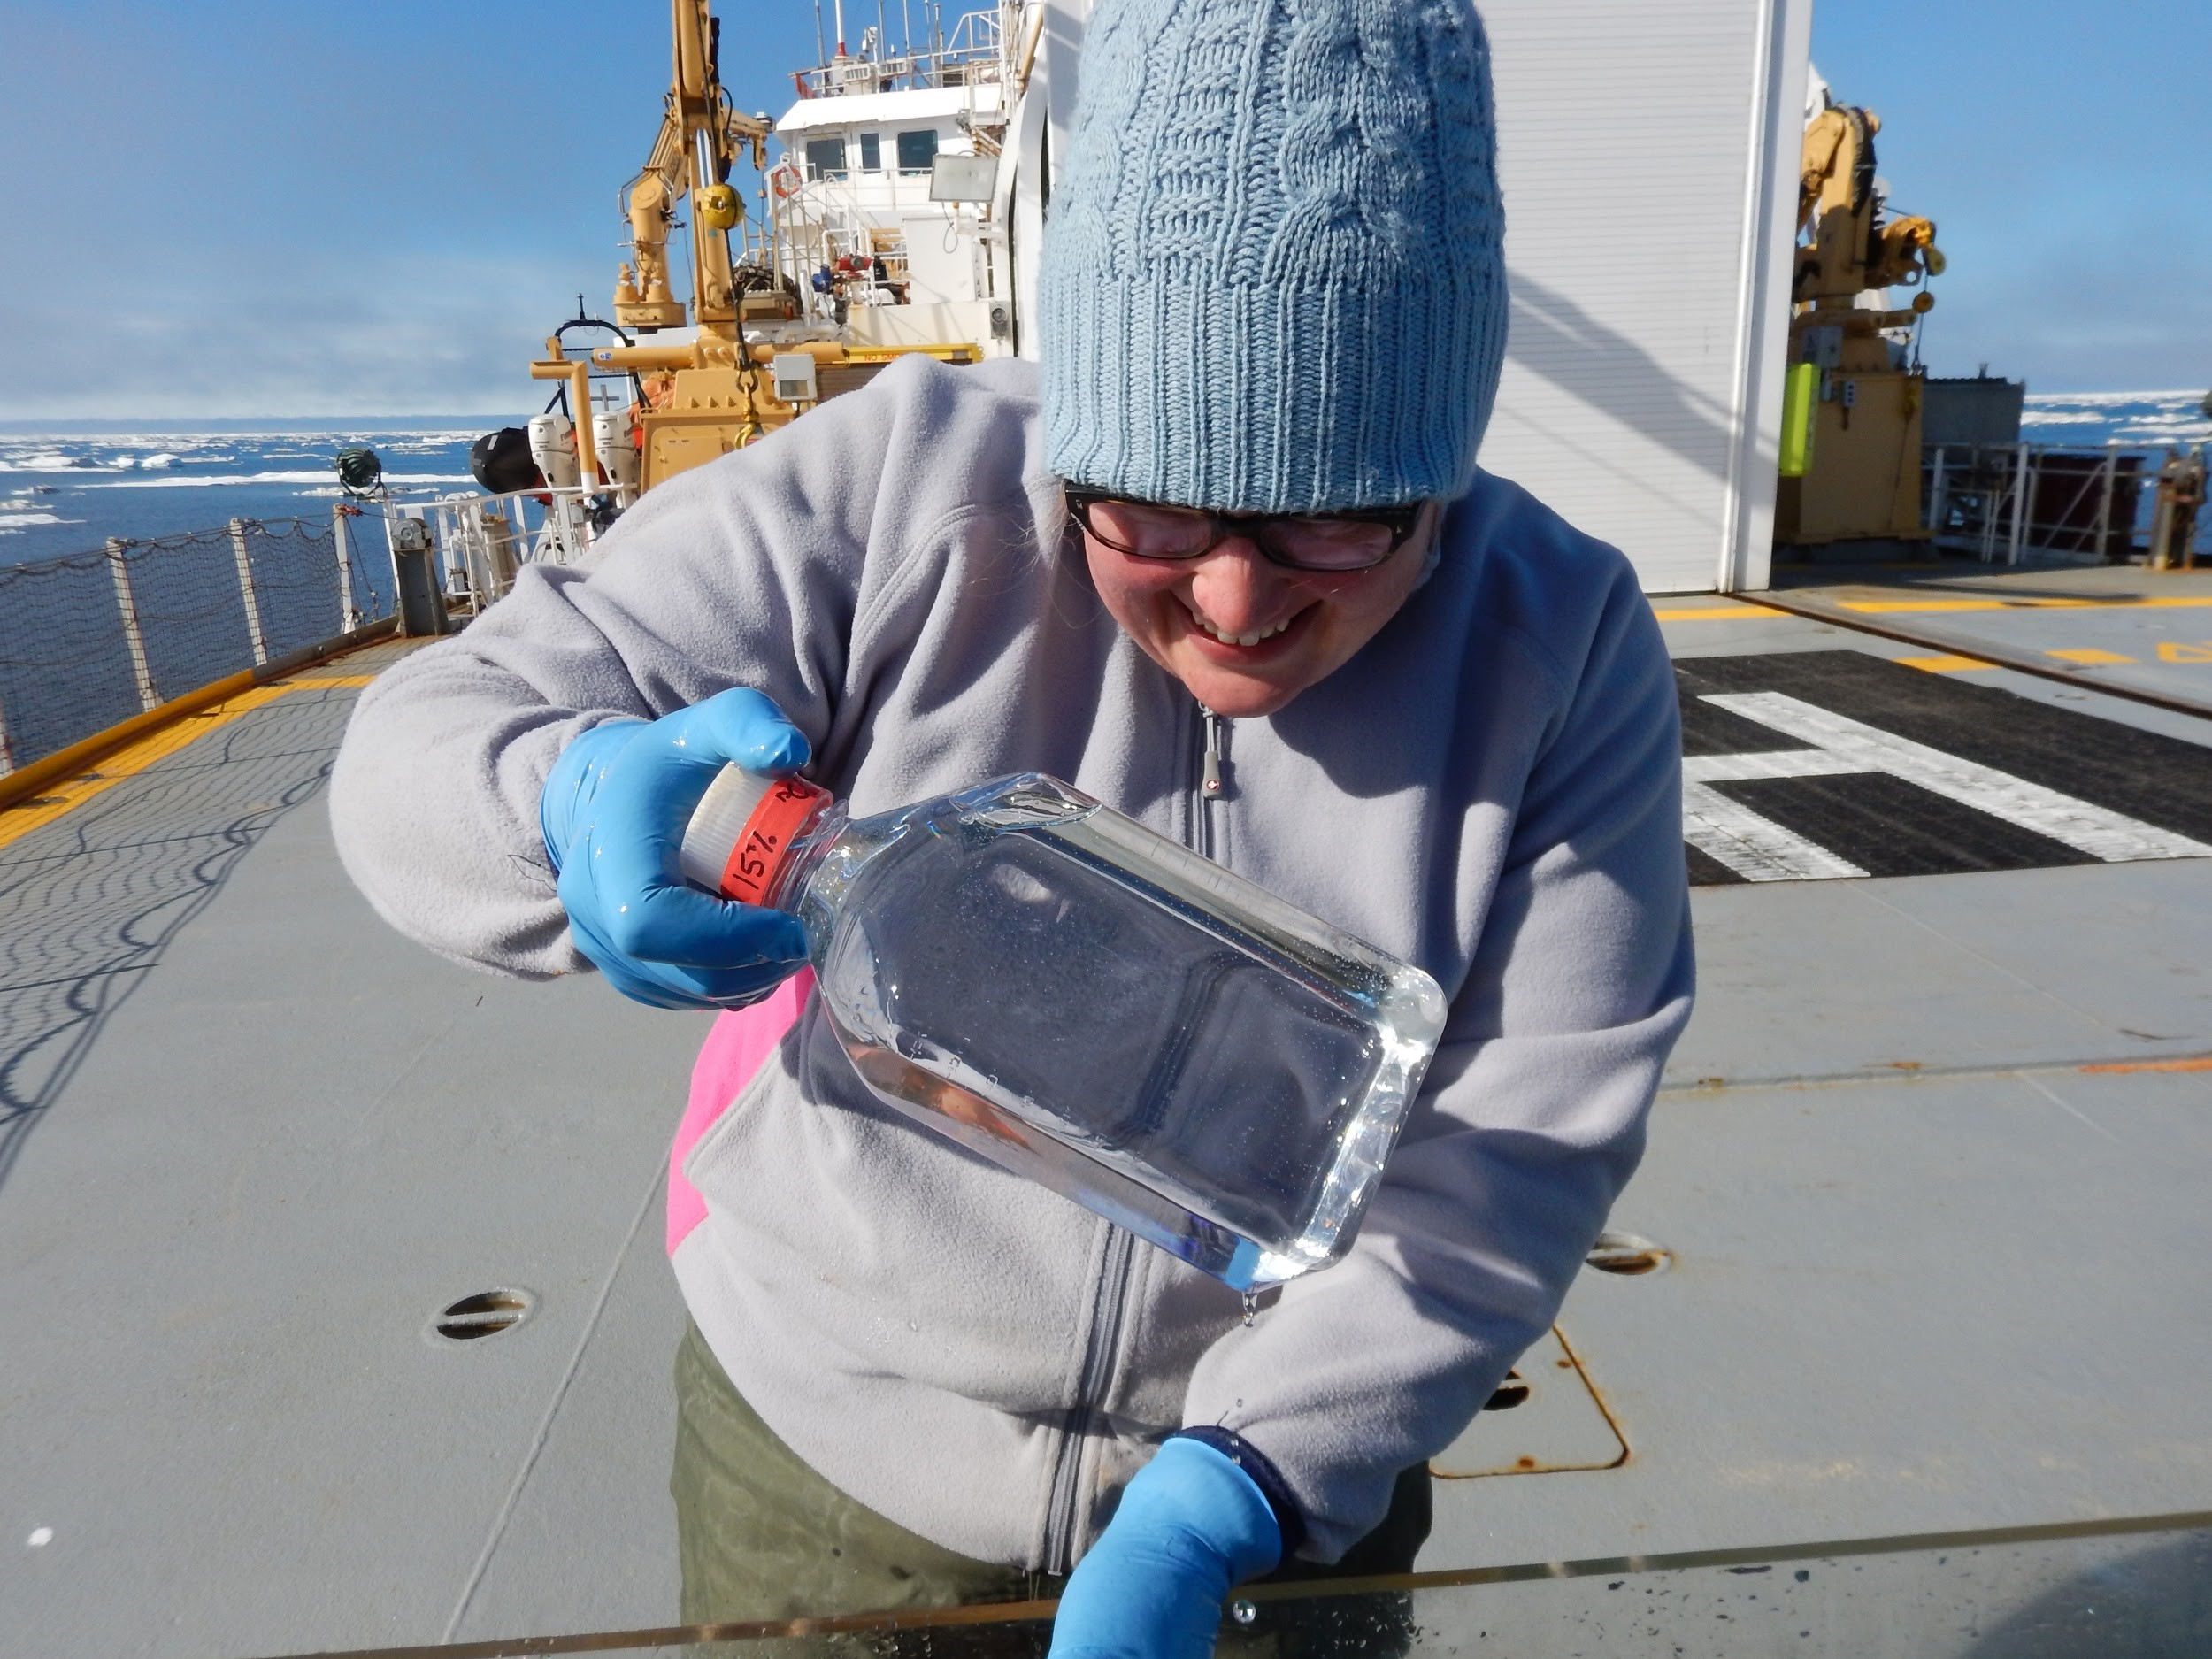 Karina holding a water sample collected on the CCGS Sir Wilfred Laurier during a research cruise in the Arctic. The cruise was conducted as part of the Distributed Biological Observatory (DBO) program